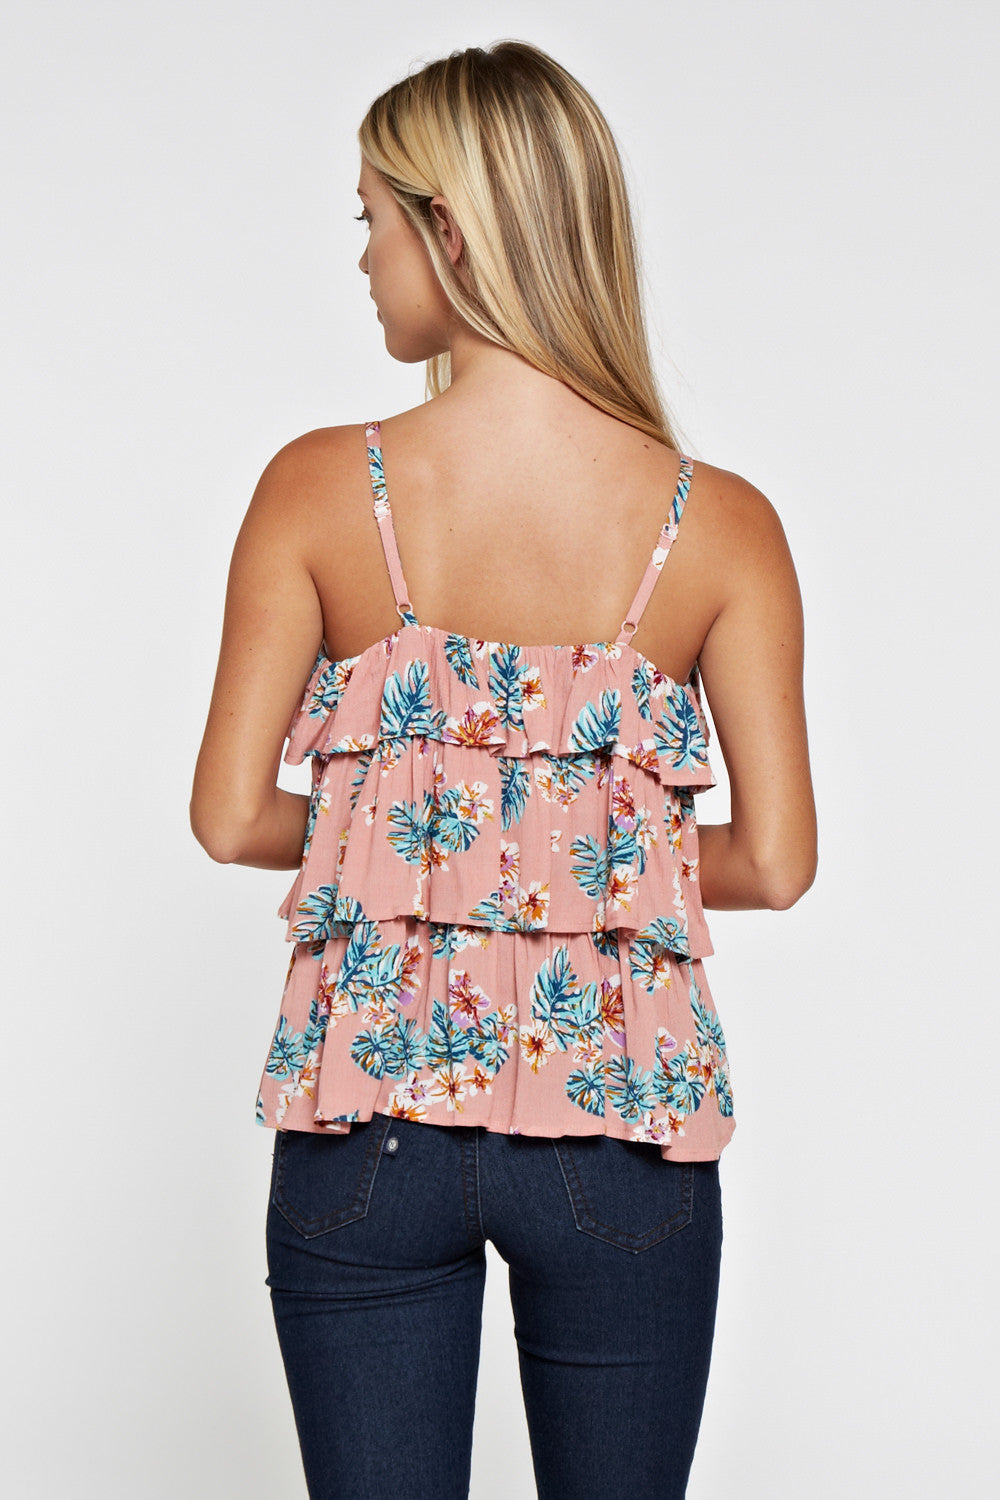 T2124 Floral Tier Cami Top